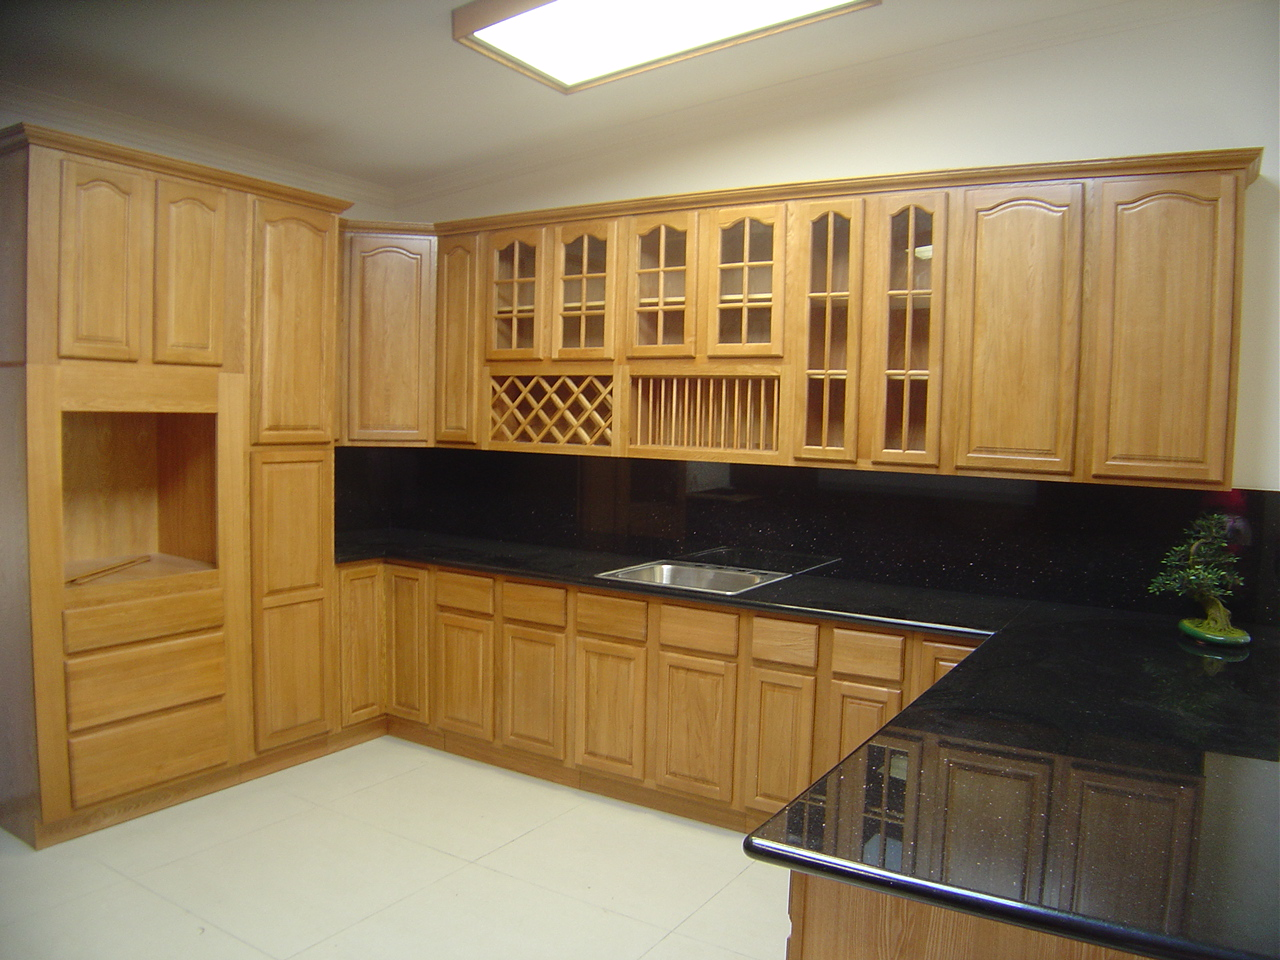 Kitchen Cabinet Patterns Corner Storage Special Design And Decor Interior